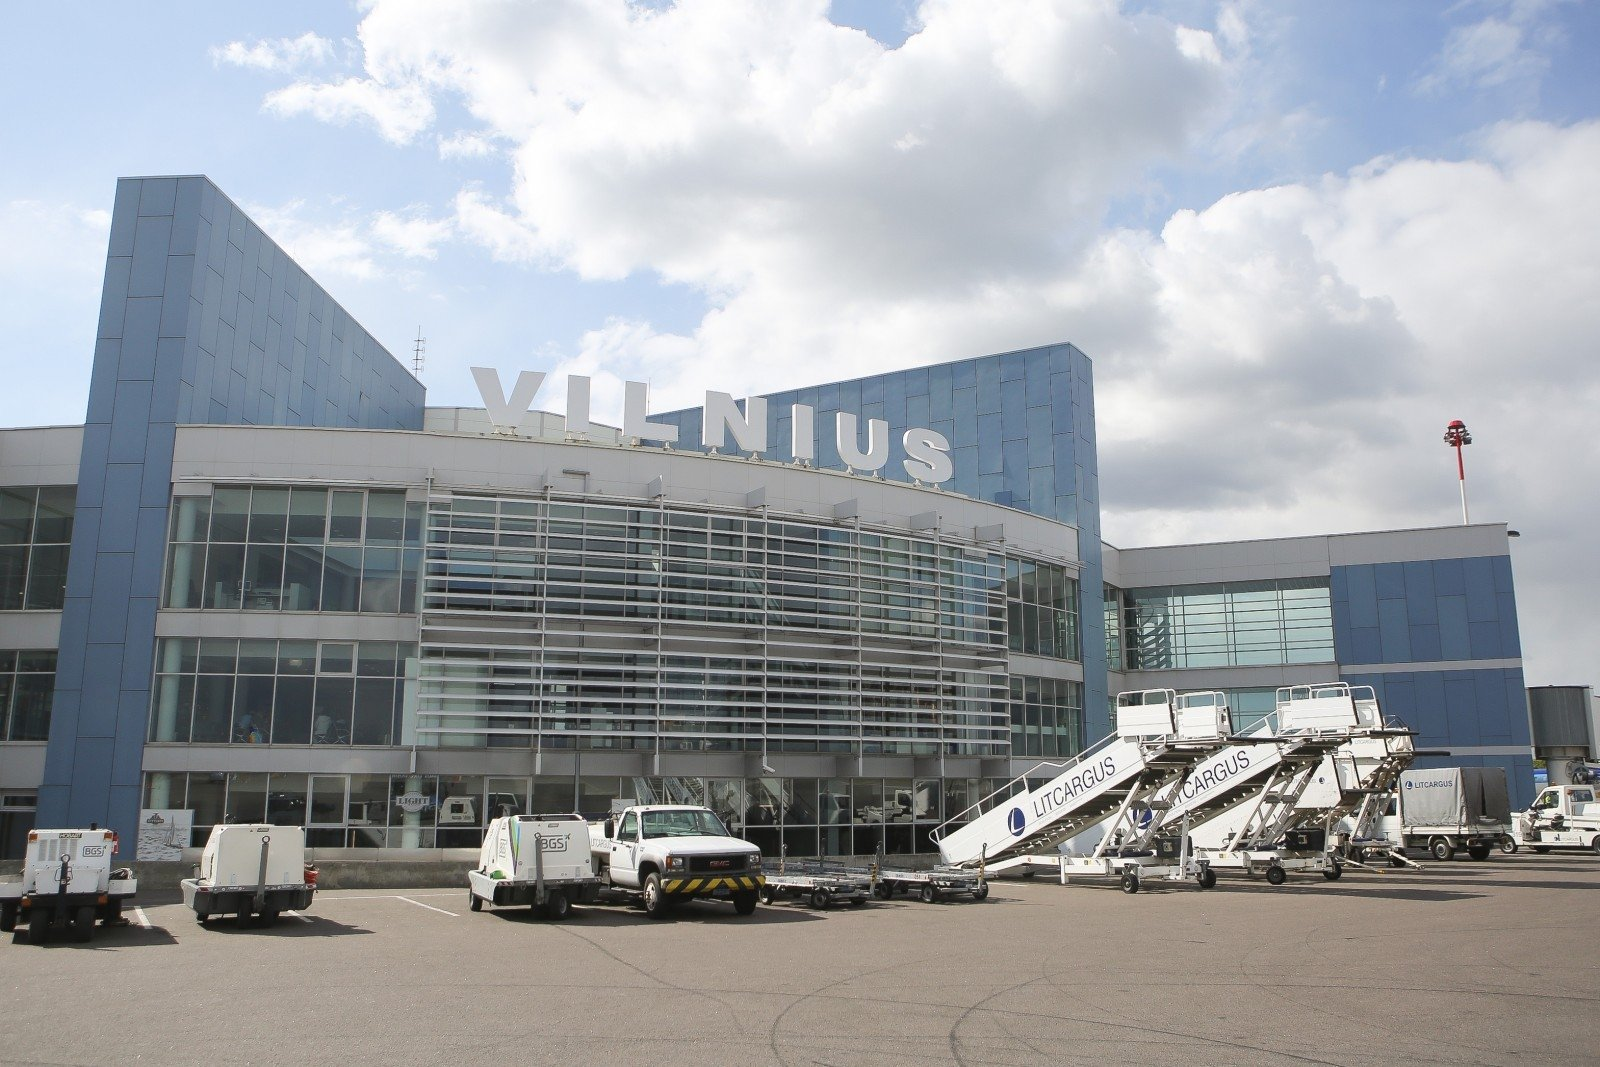 Vilnius International Airport, reconstruction, renovation, terminal, VNO, Vilnius, airport, apron, departures, work, construction